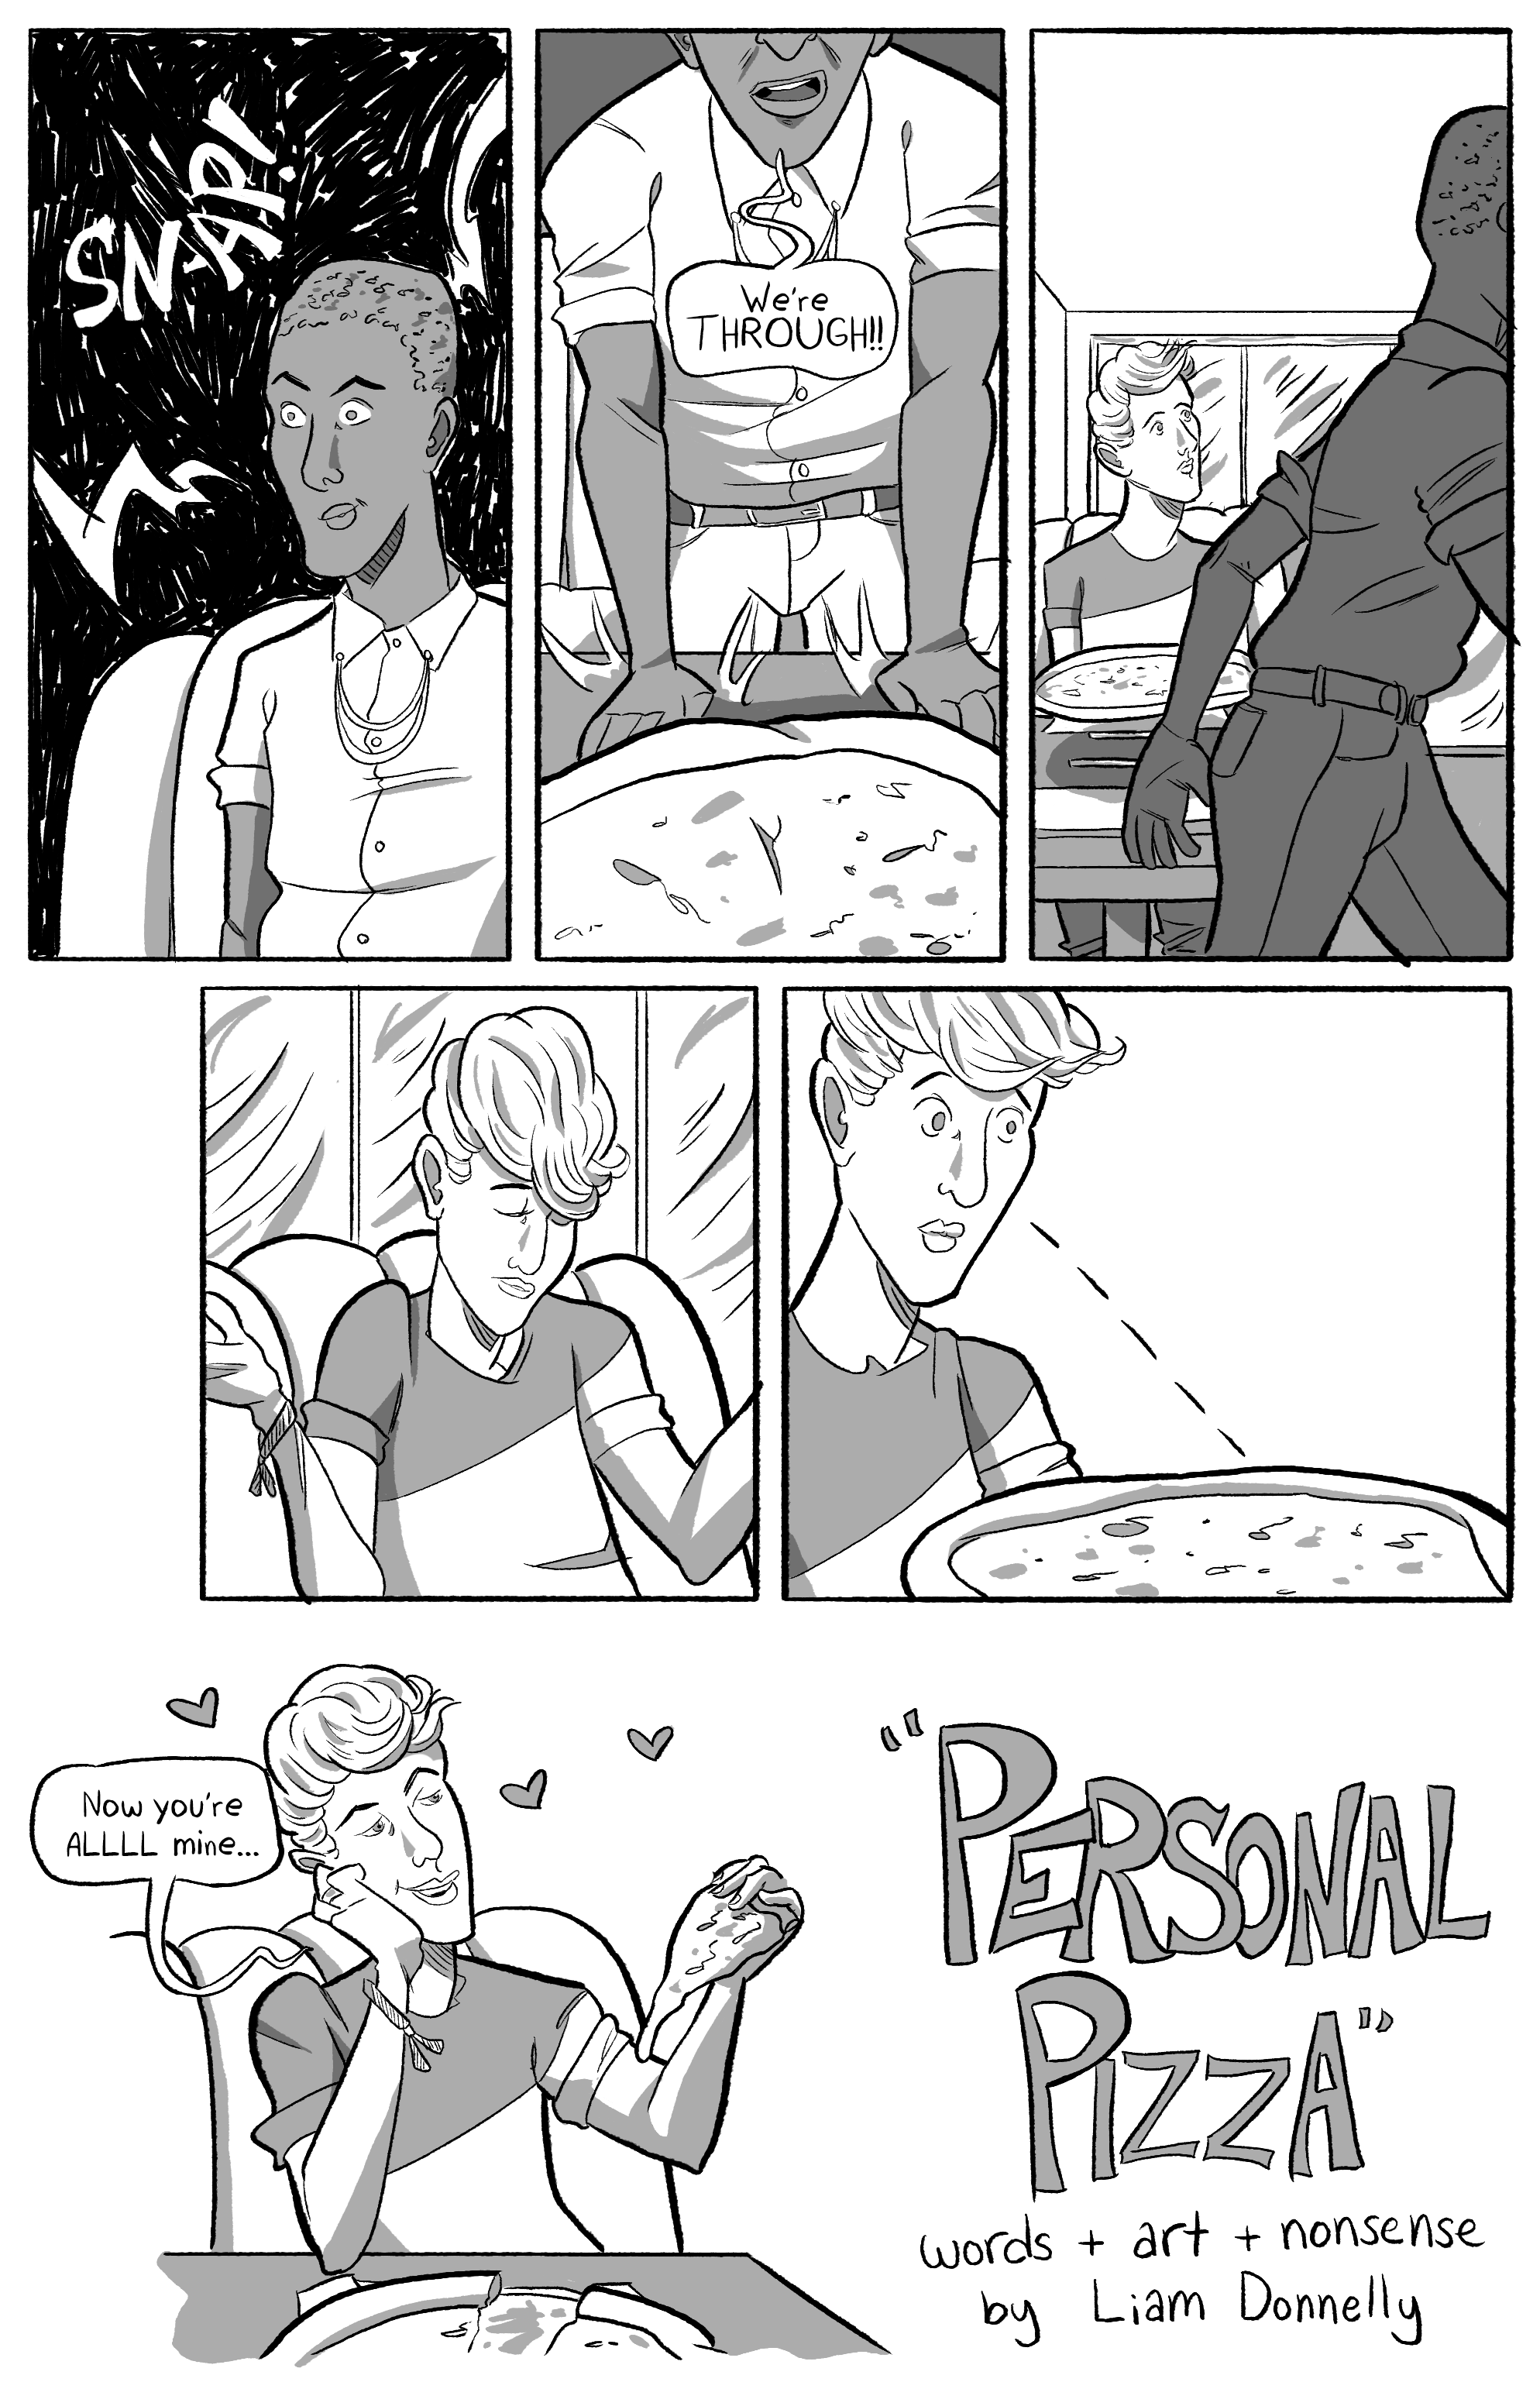 LDonnelly - Pizza Sub_Page 03.png